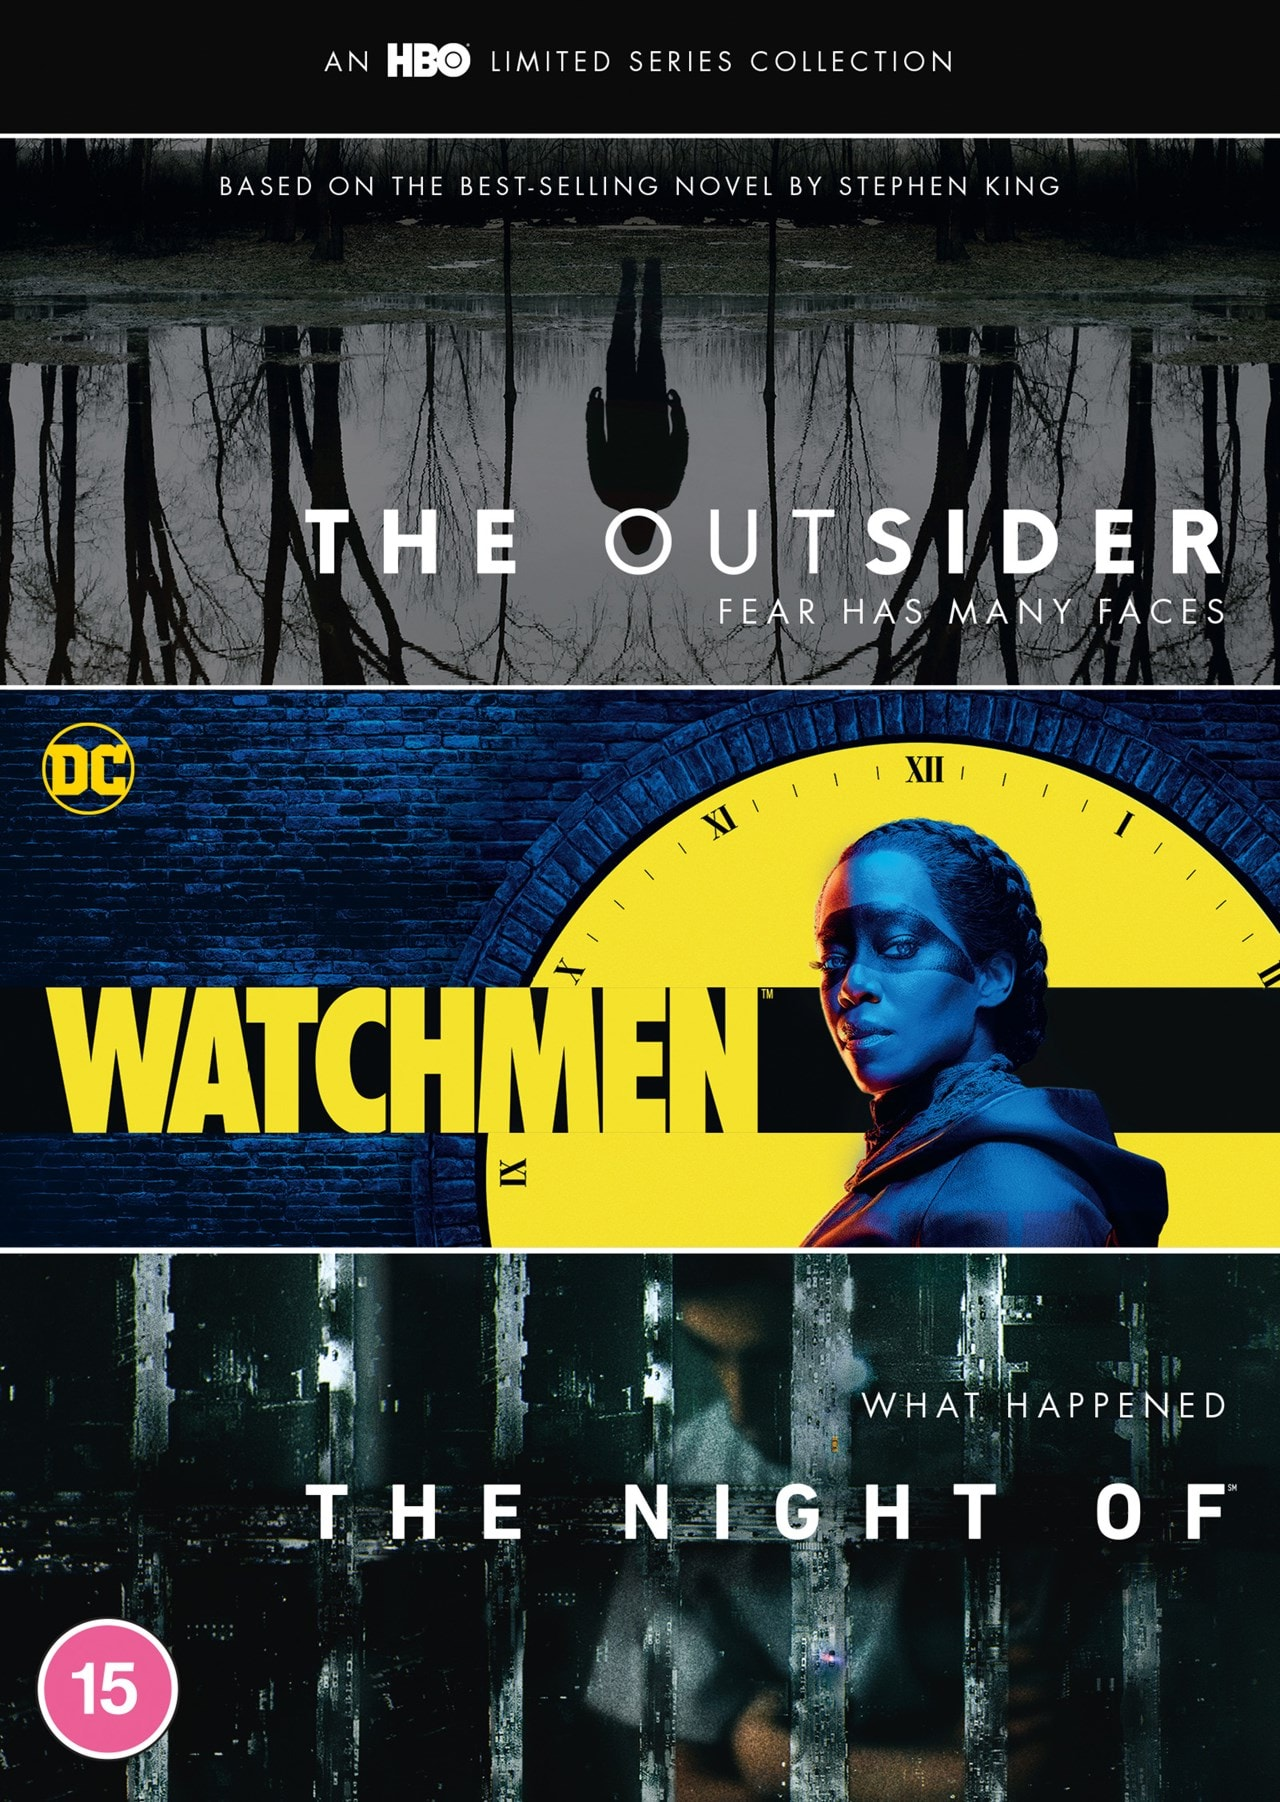 The Outsider/Watchmen/The Night Of - 1